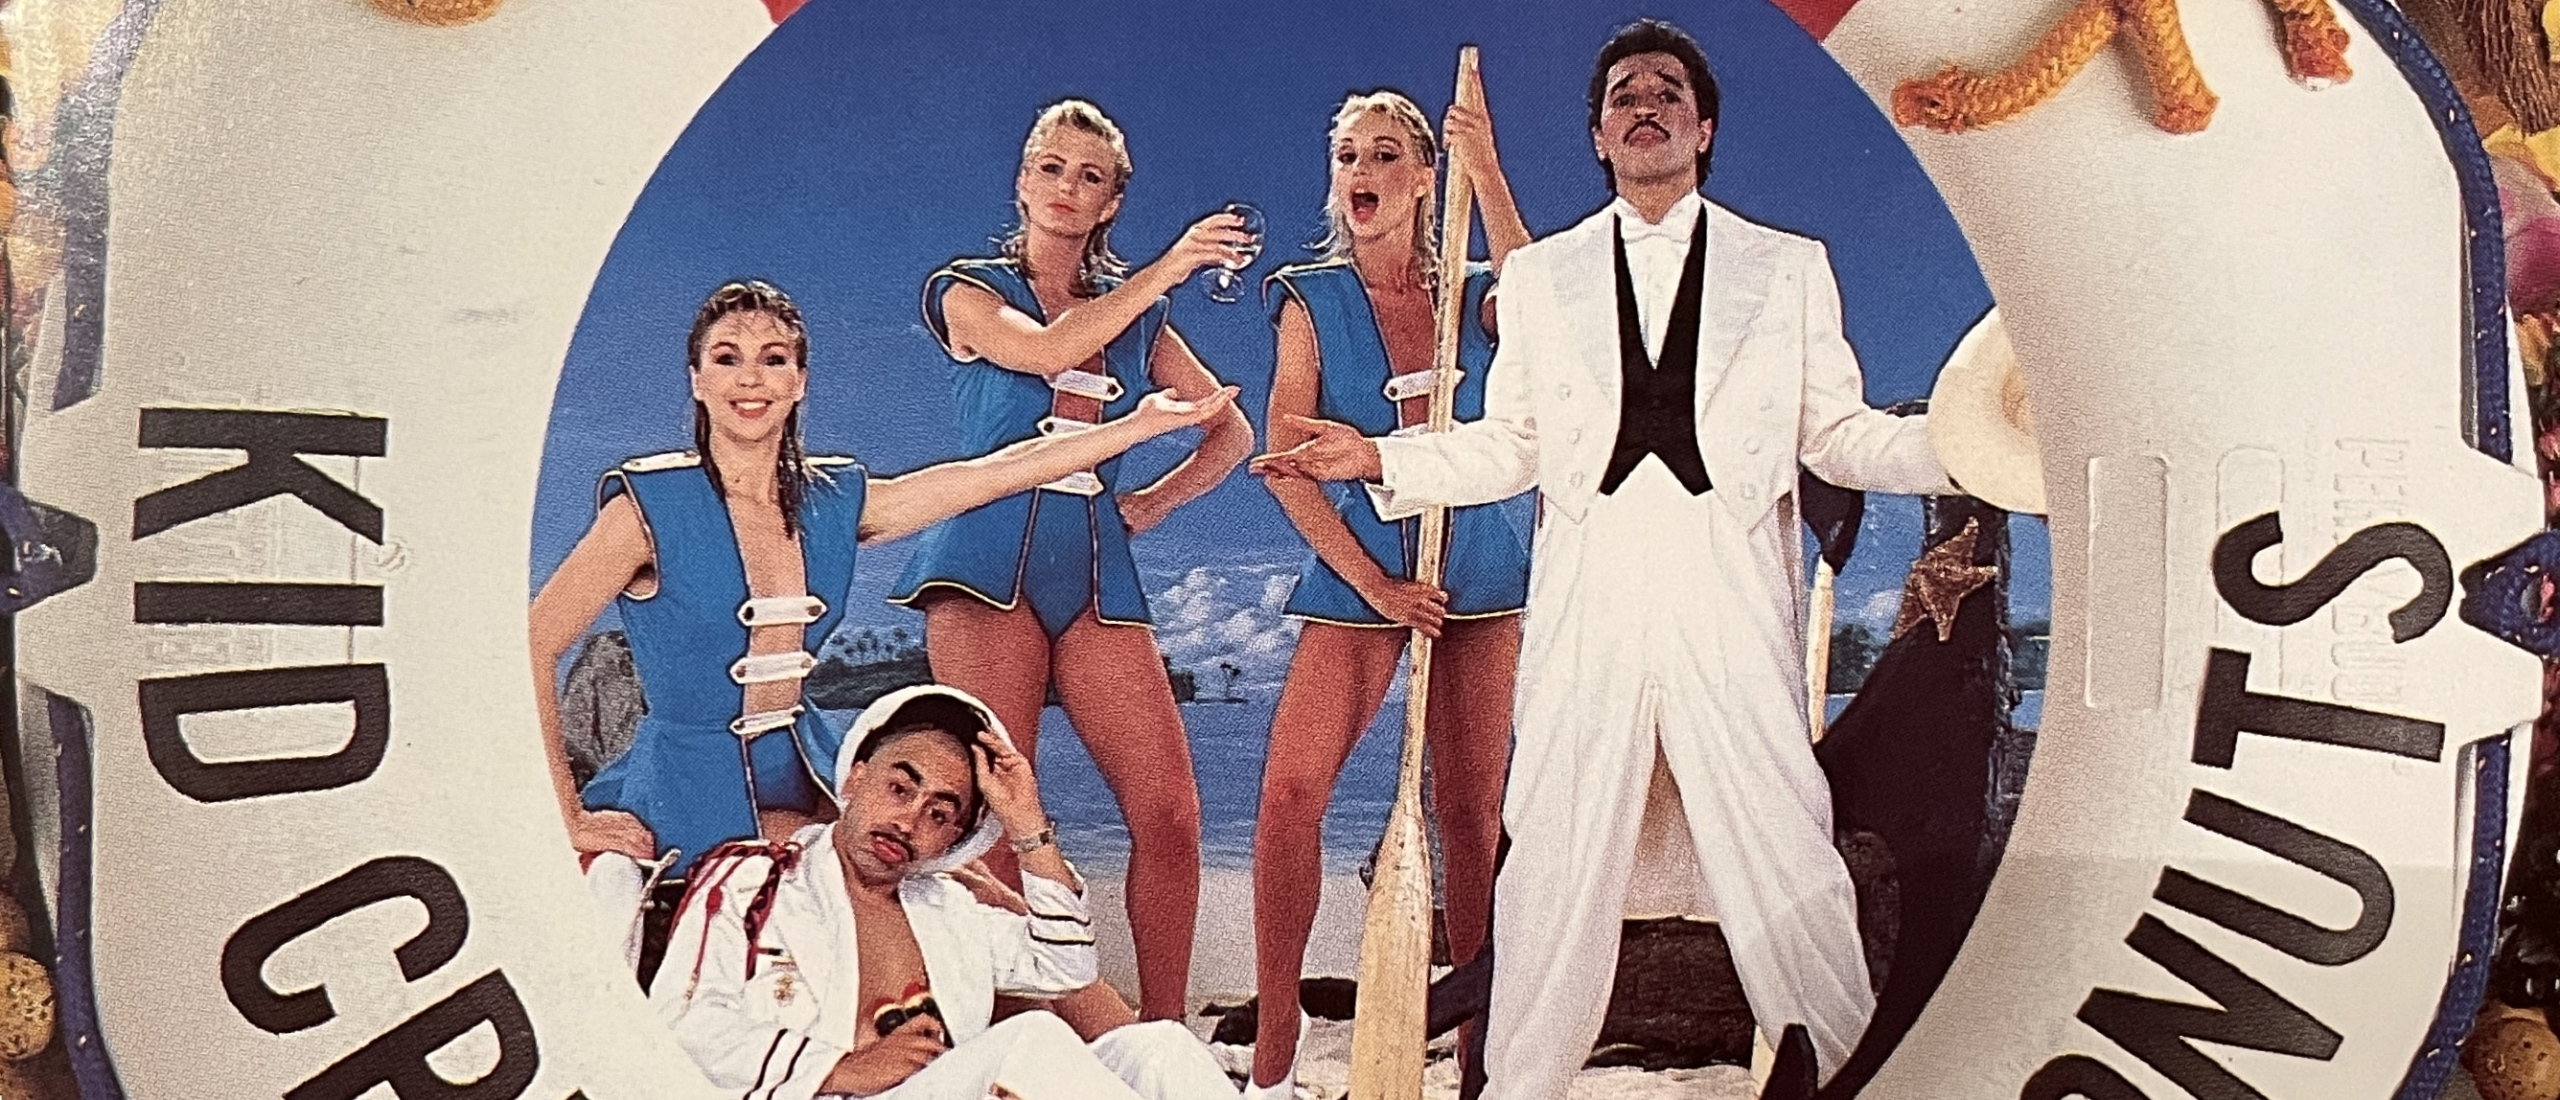 Forgotten Song Friday Kid Creole & The Coconuts met Welcome To The Lifeboat Party, Child